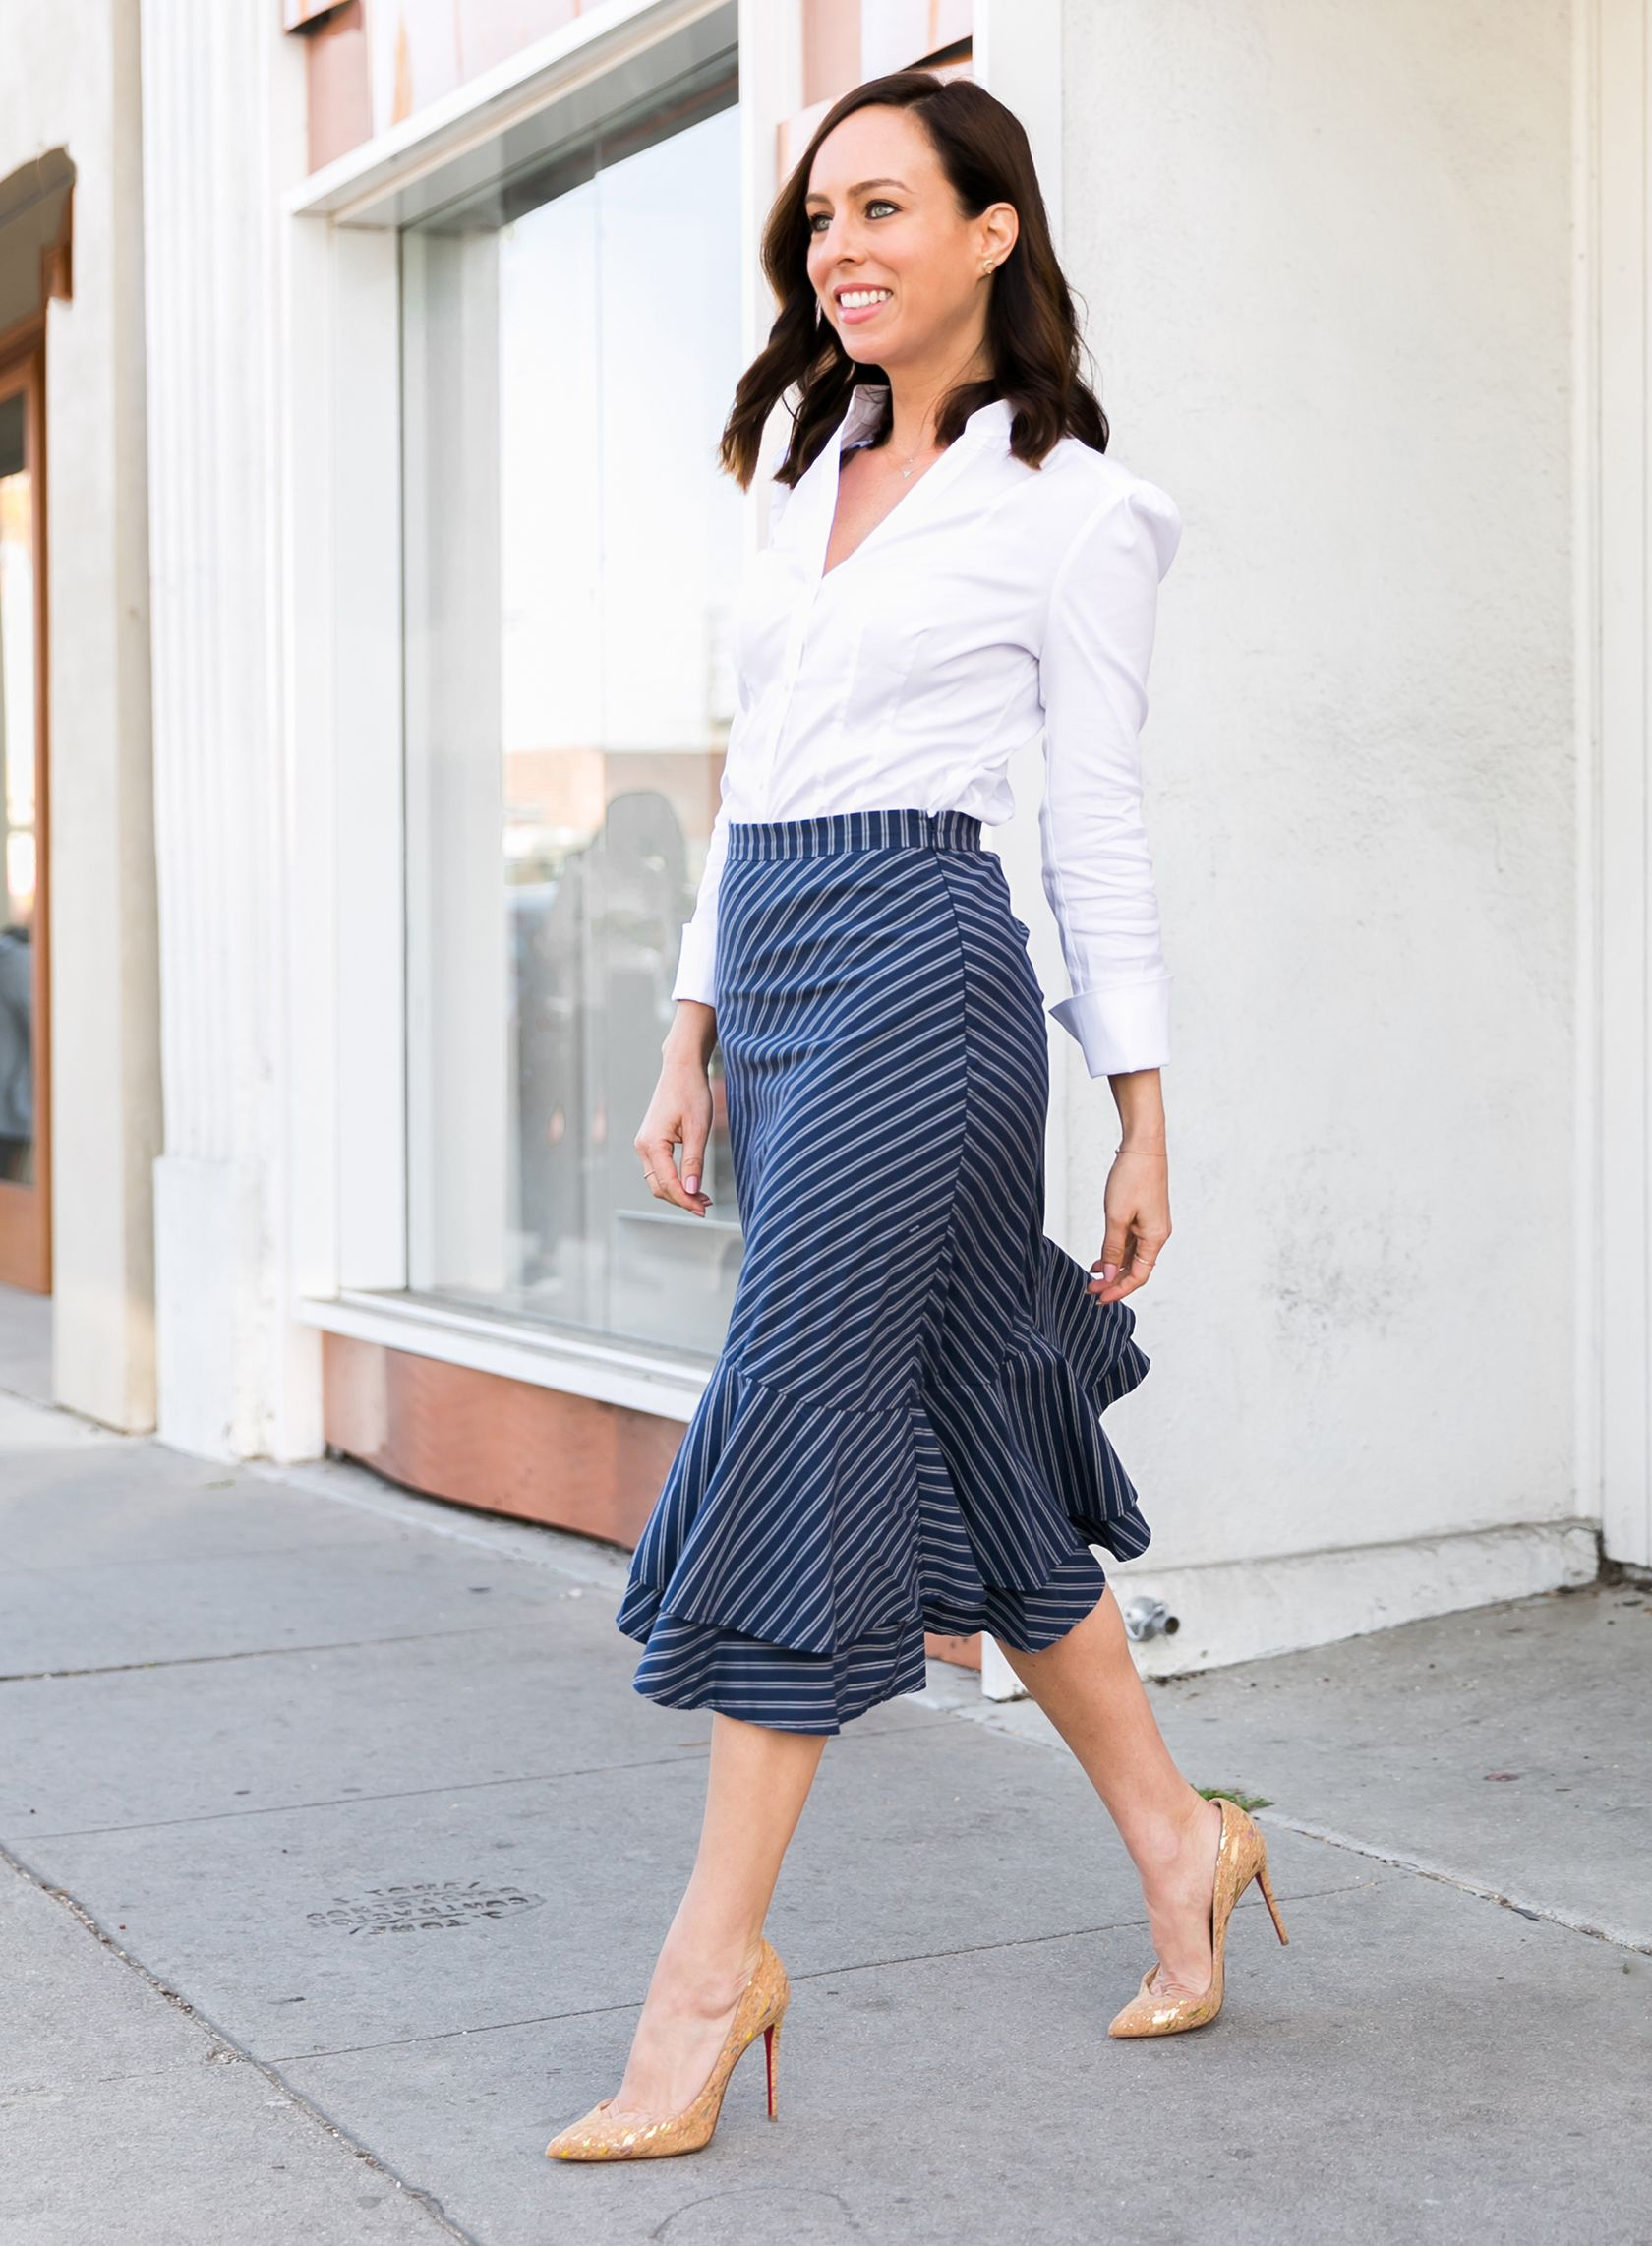 8a09162ecad1 Sydne Style shows what to wear to the office in white button down shirt and  pinstripe pencil skirt #stripe #skirts #prints #ruffles #louboutin